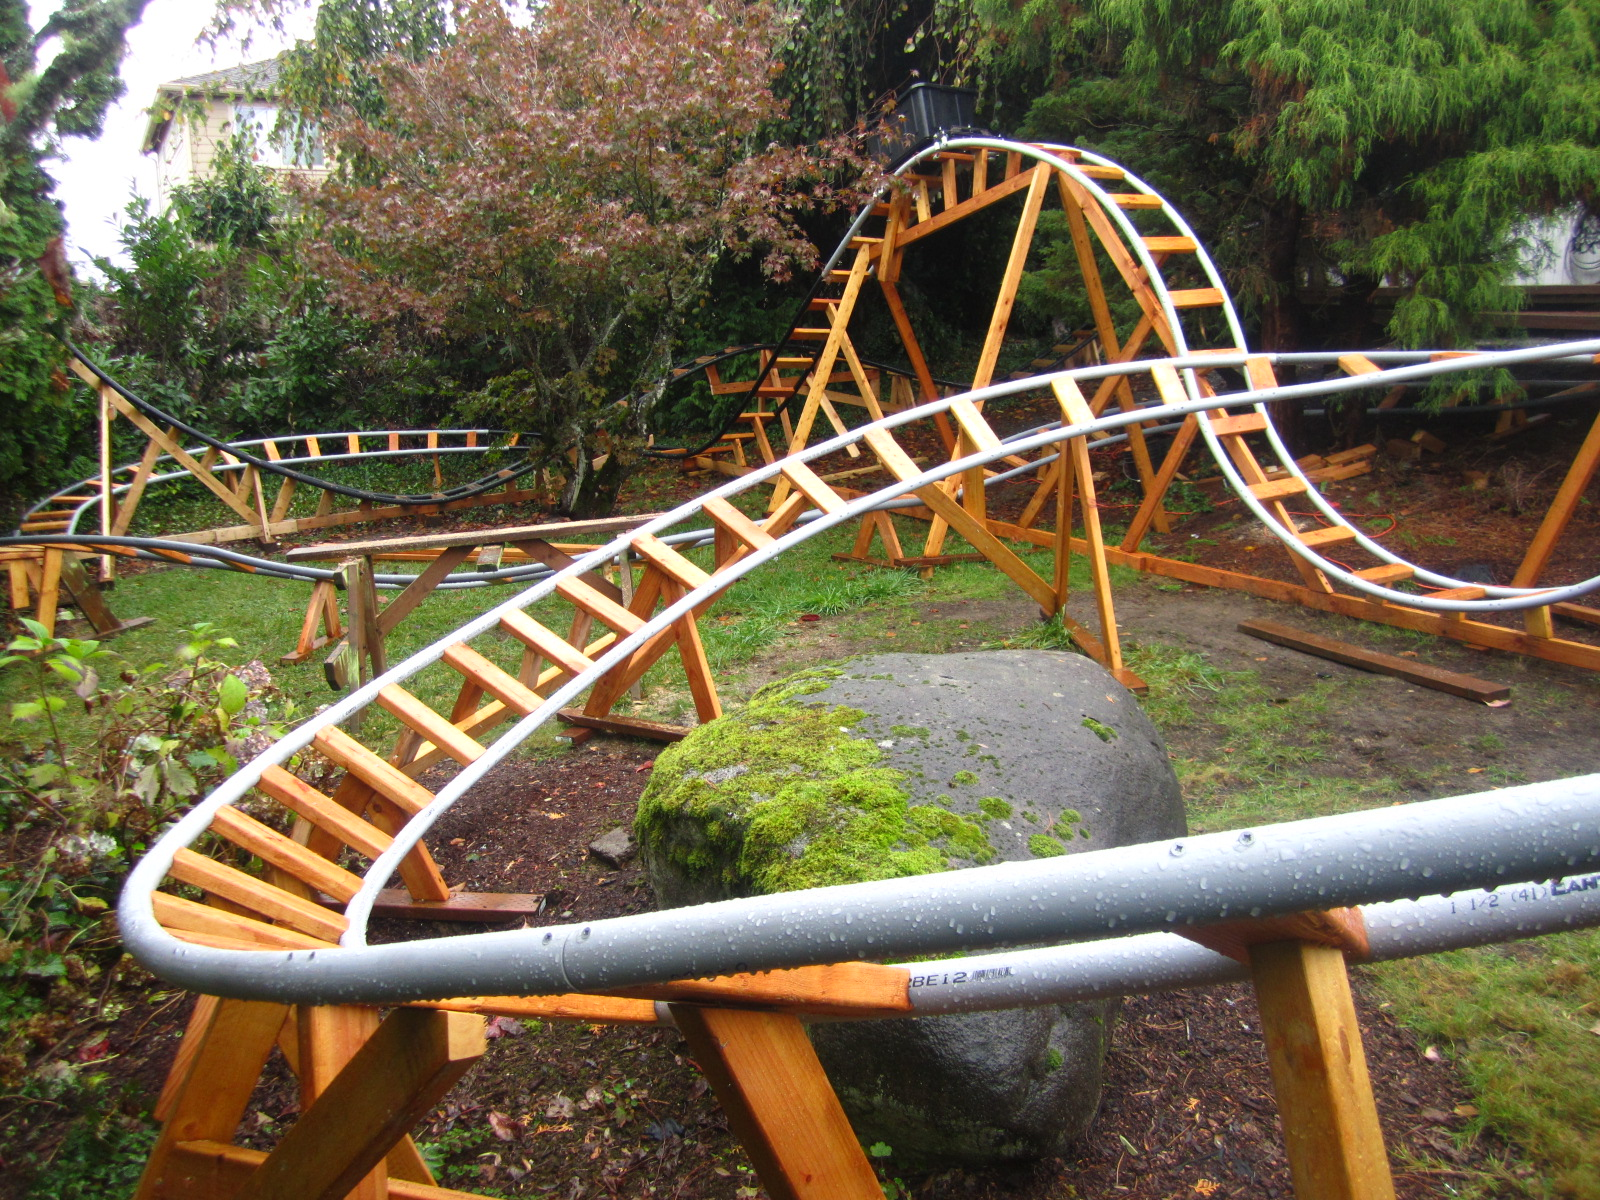 Designing a Safe Backyard Roller Coaster with Paul Gregg - Coaster101